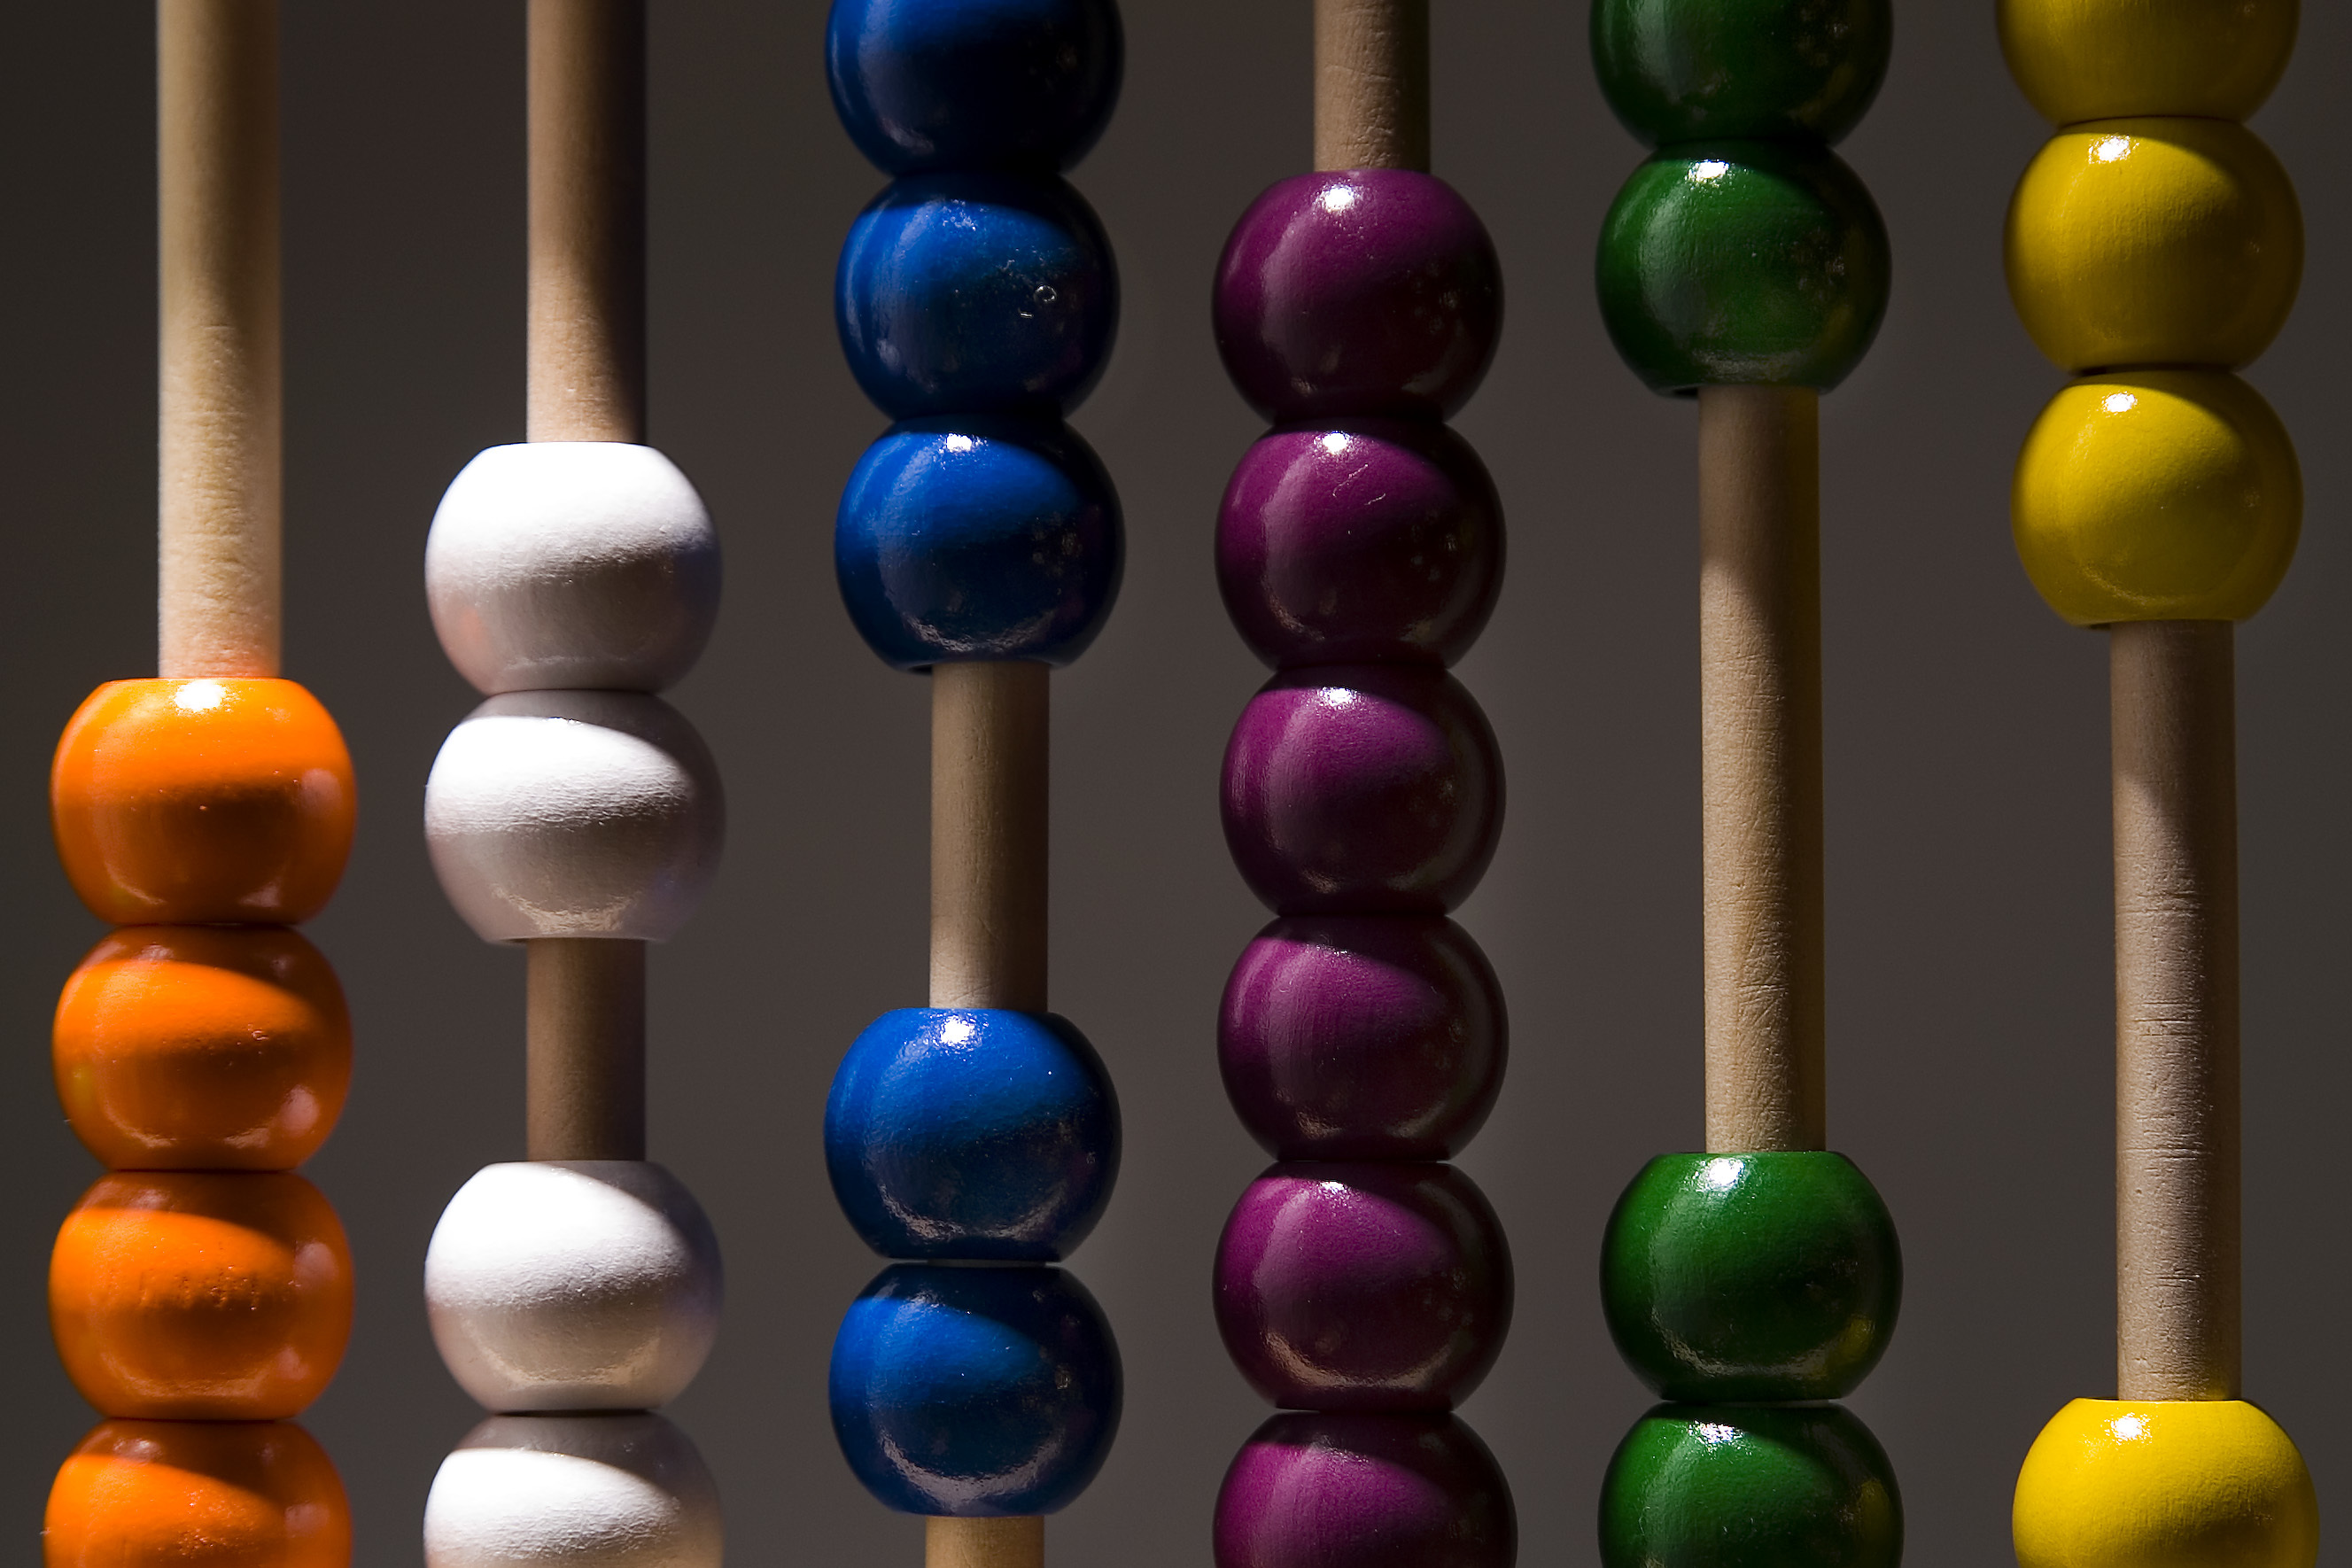 Colourful abacus beads